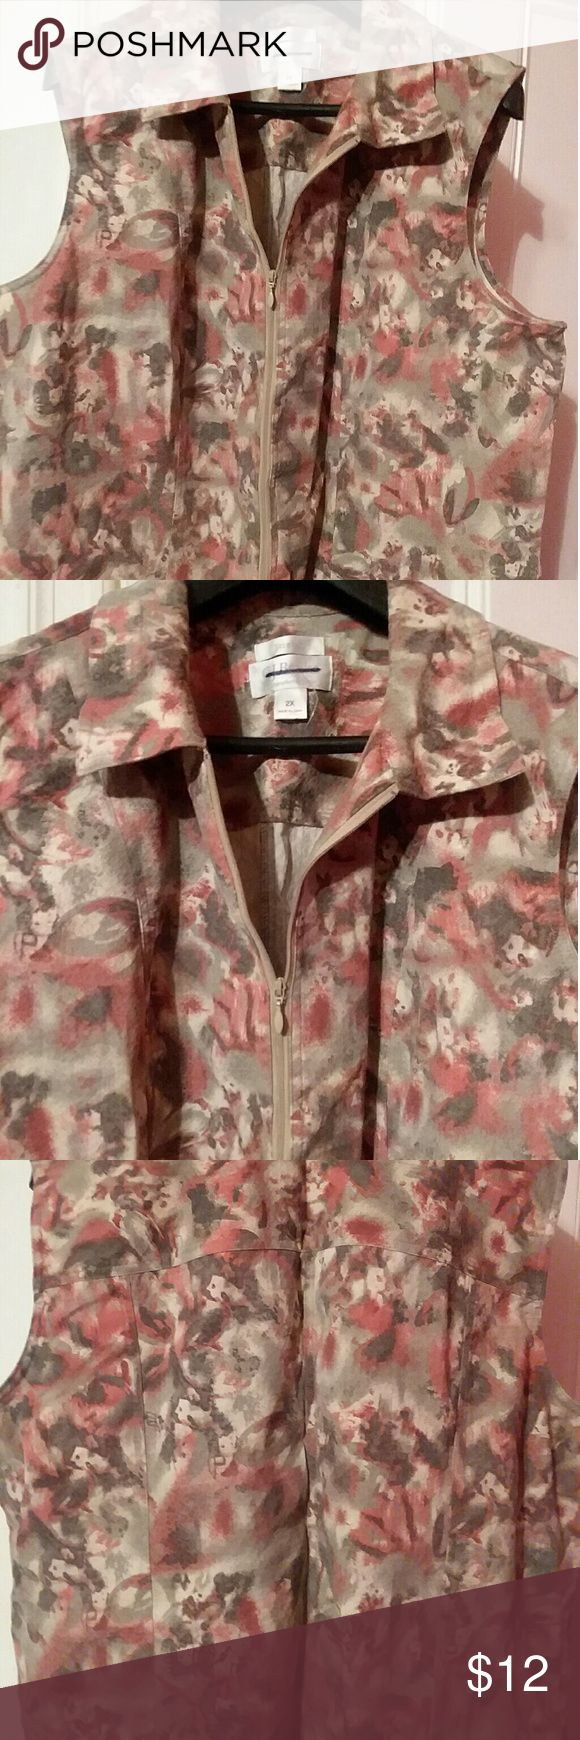 Preowned Floral Vest This cute floral zip up vest by CJ Banks has a stretchy material. Very cute and you can wear with just about anything CJ Banks Jackets & Coats Vests